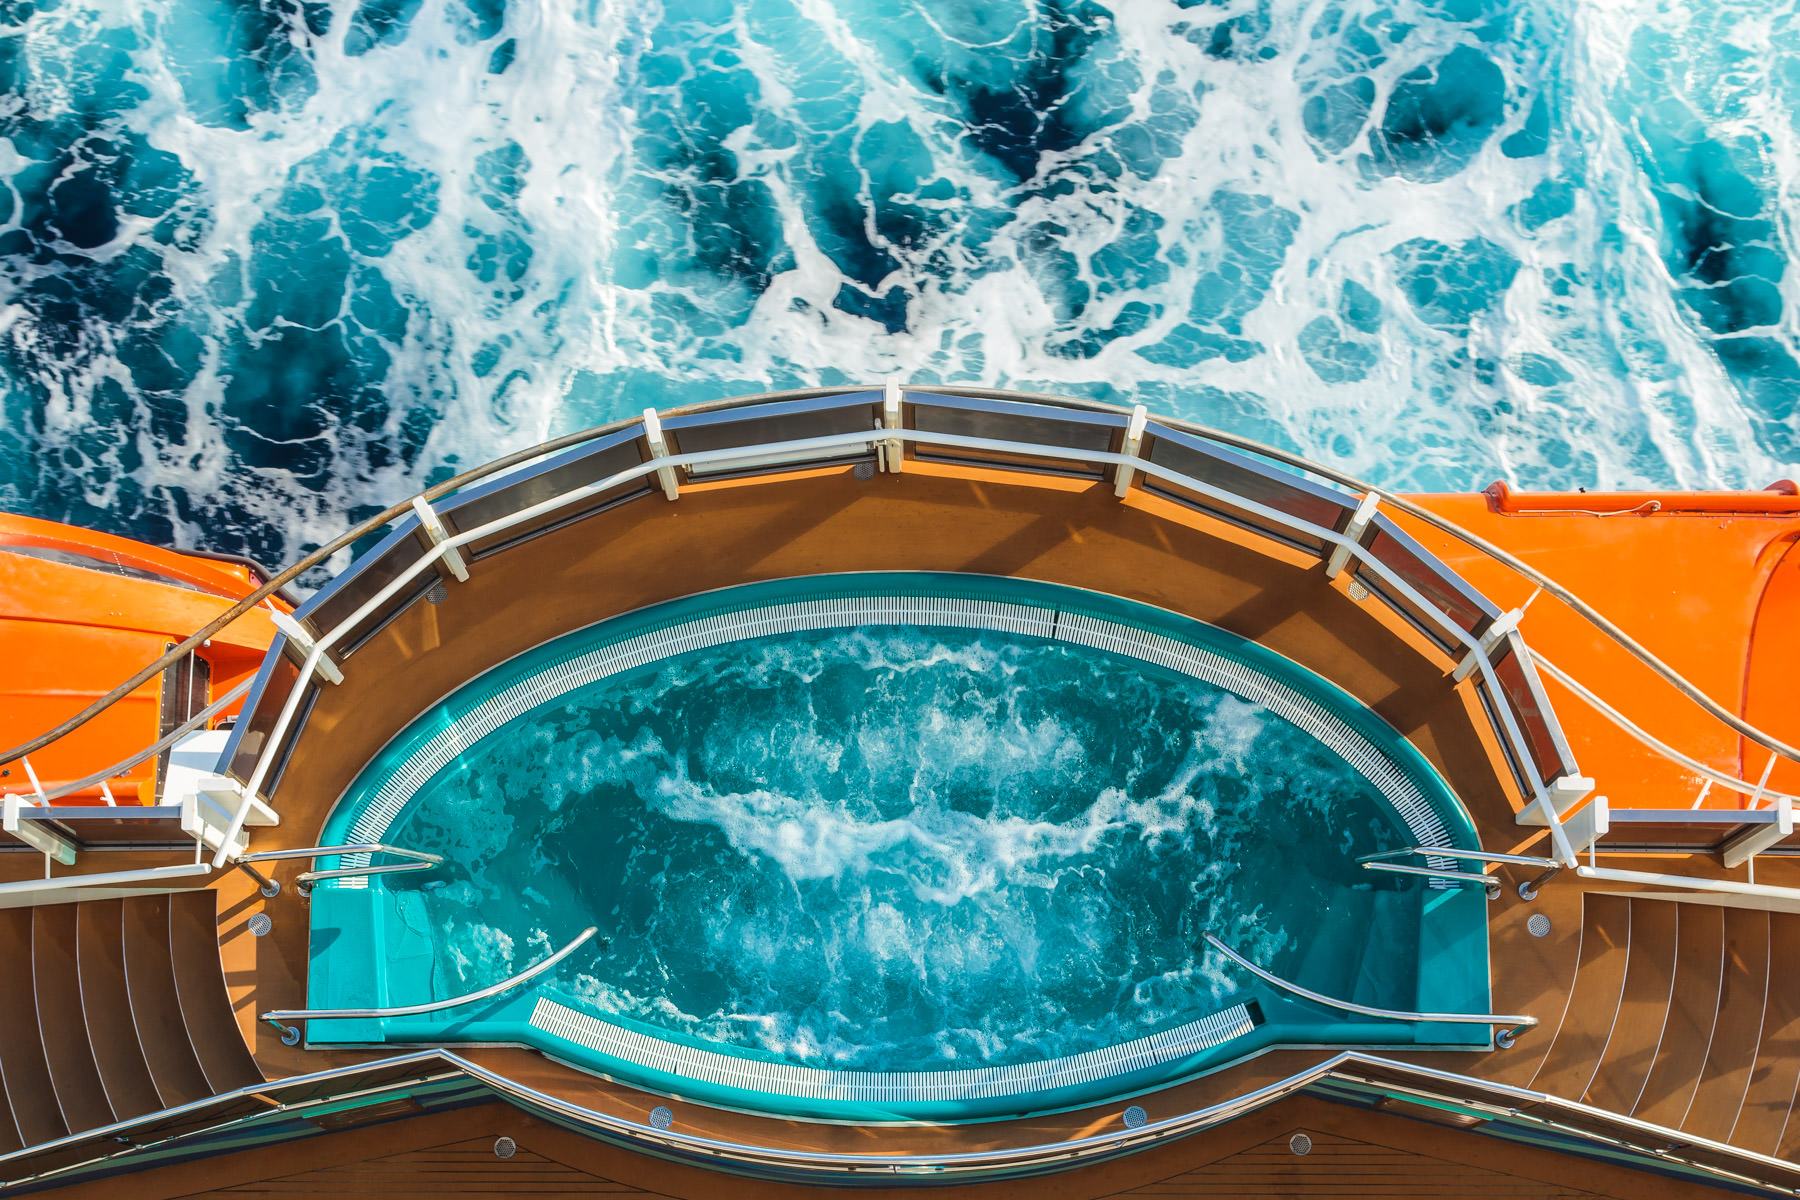 One of the four hot tubs that bulge out over the sea aboard the cruise ship Carnival Magic, as seen from above.